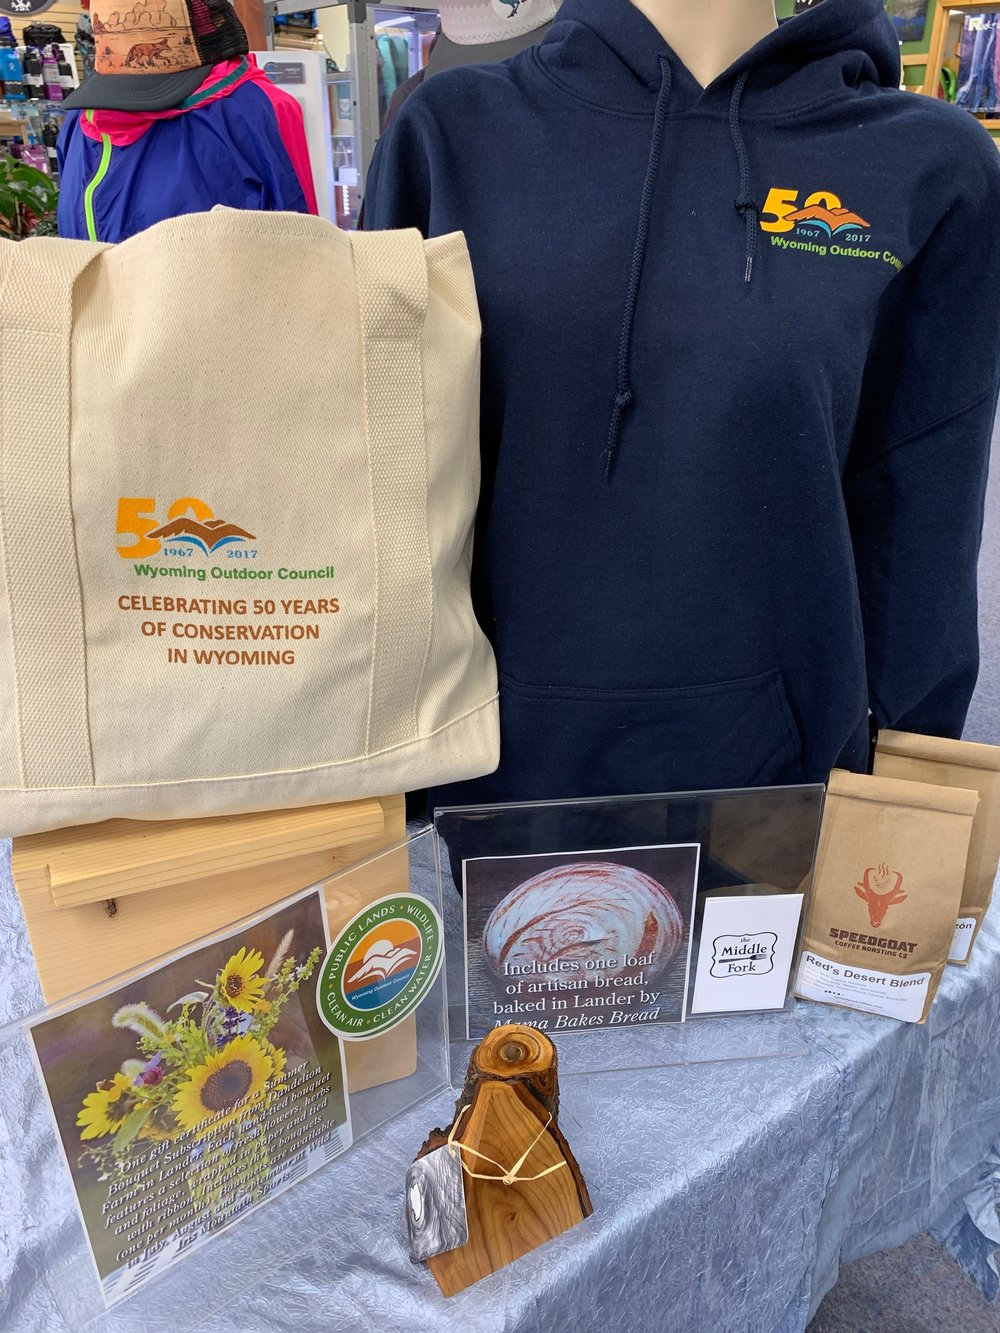 RAFFLE PRIZE #4 - Lander Locals - Wabi Sabi Woodworks Wood VaseWyoming Outdoor Council Hoody: $50Wyoming Outdoor Council Tote: $25Speedgoat Coffee 2 lbs: $30Middle Fork Restaurant Gift Card: $40Dandelion Farms Flower SubscriptionMama Bakes Bread Coupon